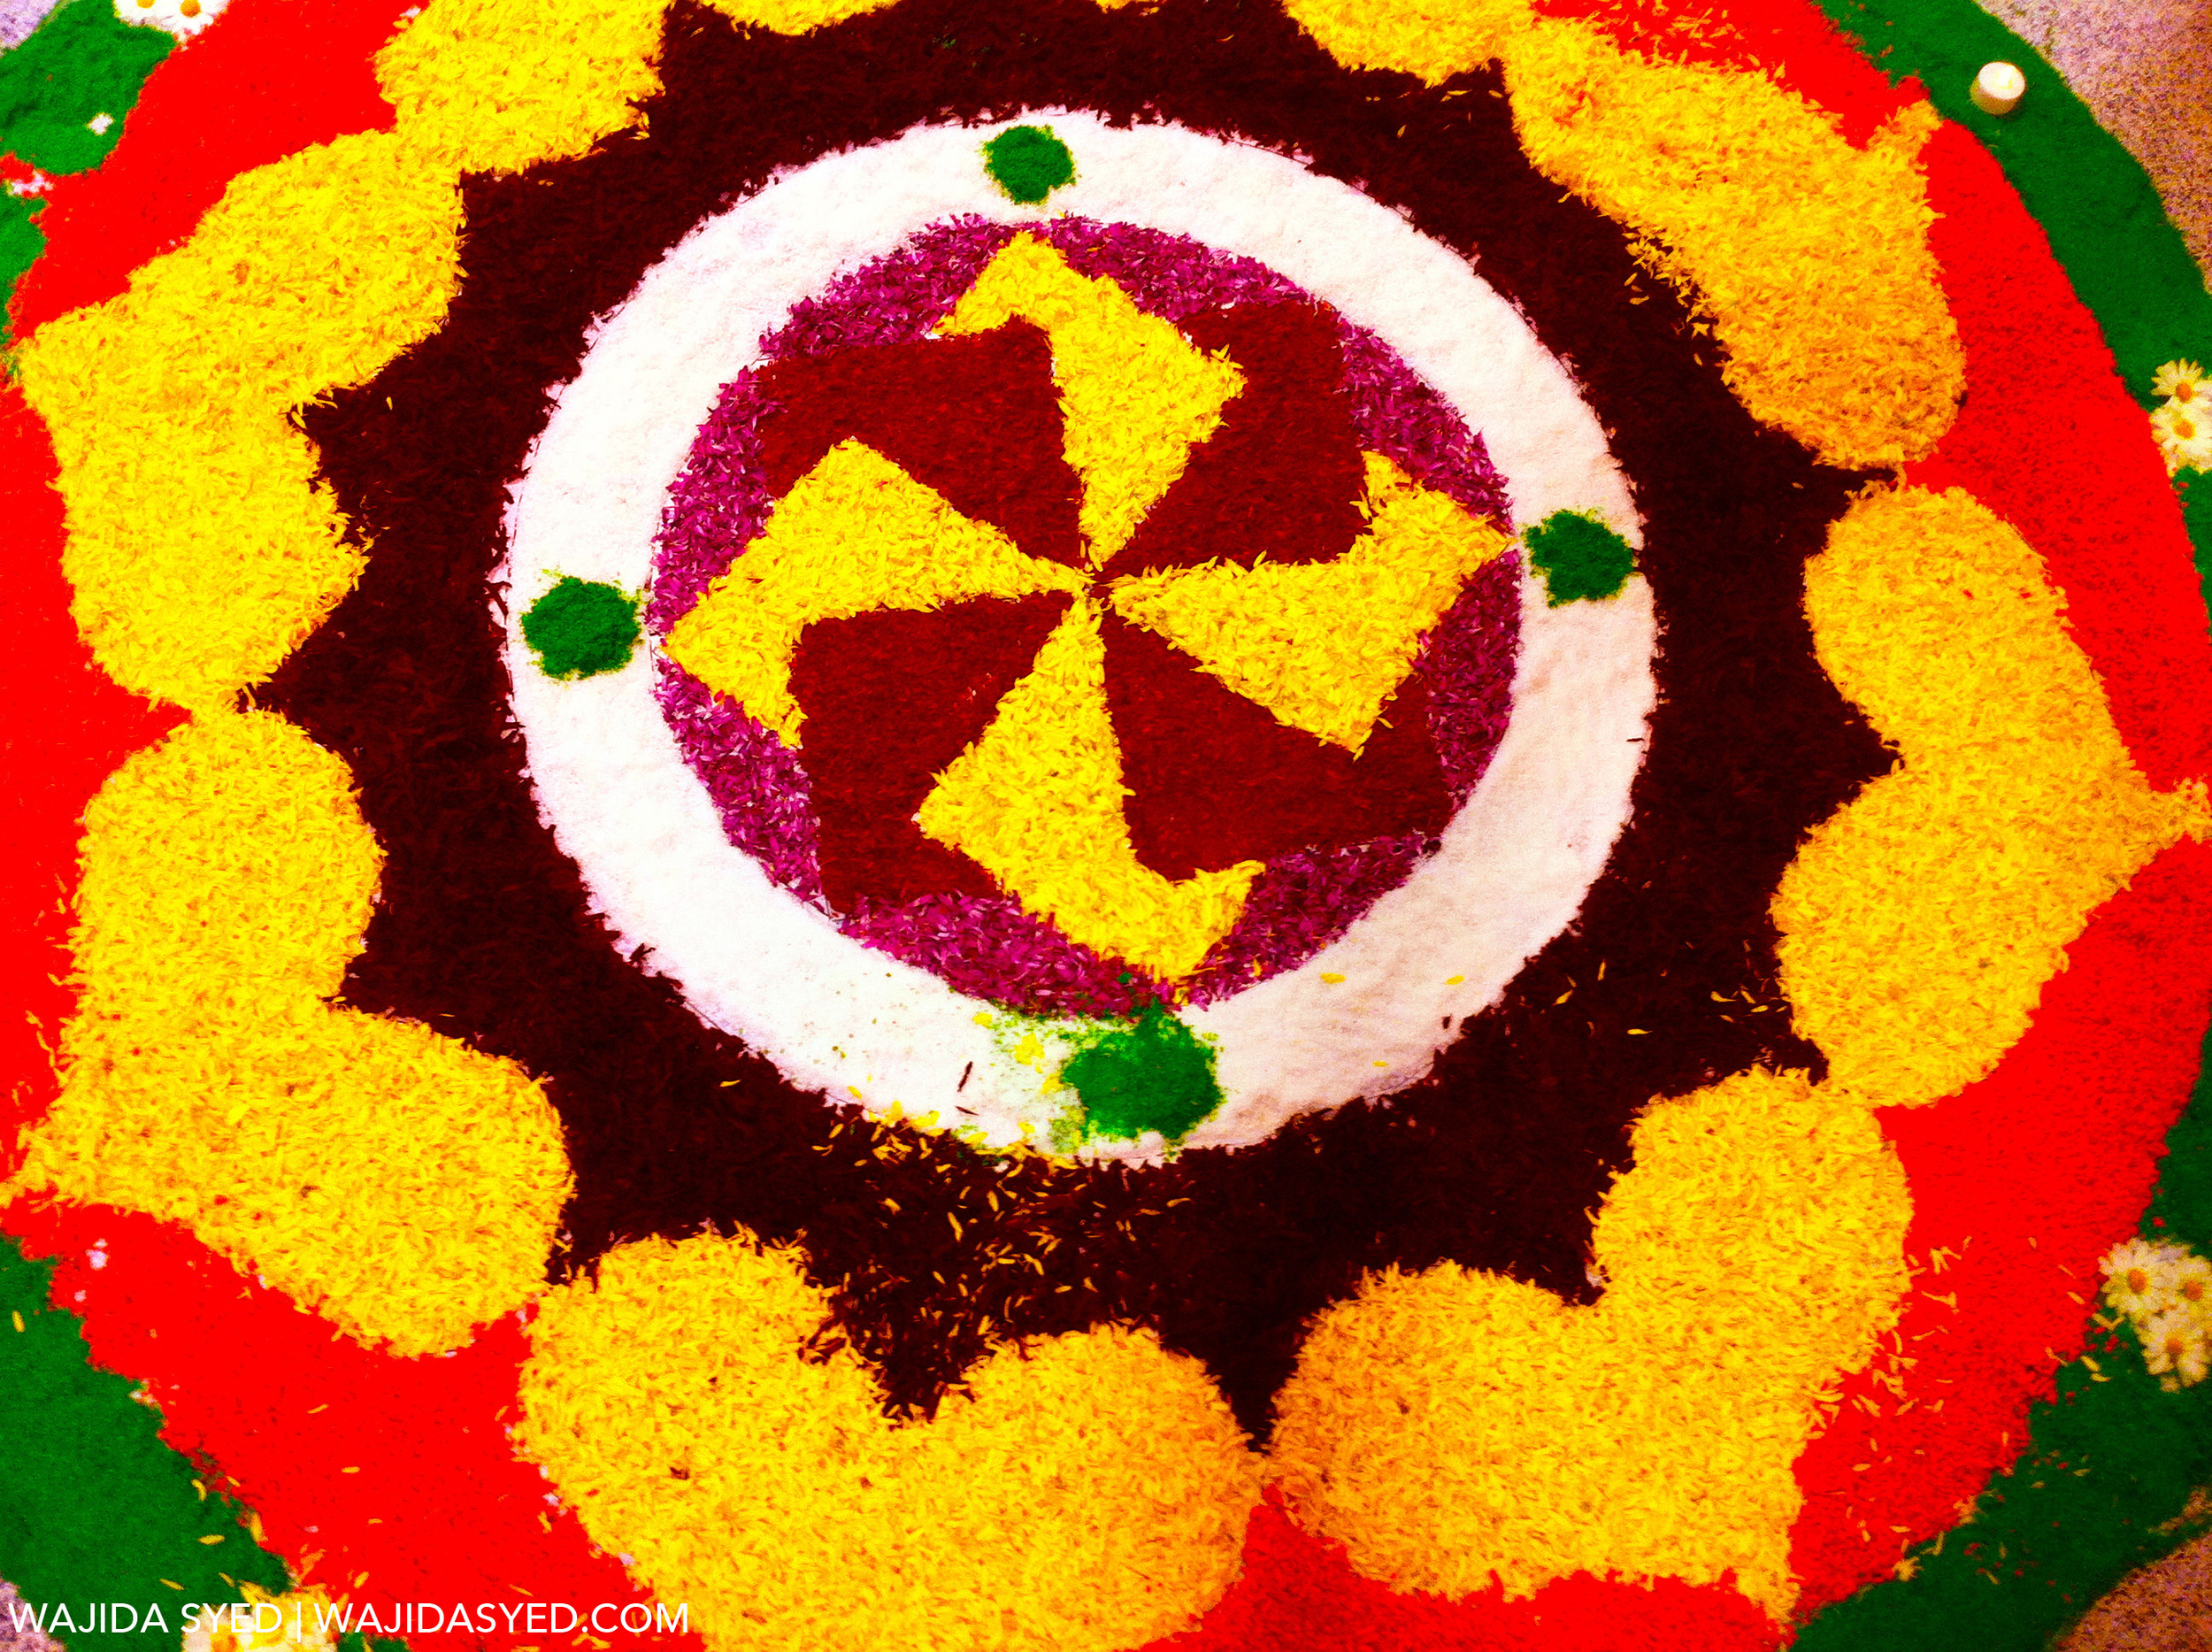 """Rangoli: beautiful artwork made with sand or petals, usually in the shape of a lotus, decorate entrances of homes on Diwali.                                Normal    0                false    false    false       EN-US    JA    AR-SA                                                                                                                                                                                                                                                                                                                                                                                                                                                                                                                                                  /* Style Definitions */ table.MsoNormalTable {mso-style-name:""""Table Normal""""; mso-tstyle-rowband-size:0; mso-tstyle-colband-size:0; mso-style-noshow:yes; mso-style-priority:99; mso-style-parent:""""""""; mso-padding-alt:0in 5.4pt 0in 5.4pt; mso-para-margin:0in; mso-para-margin-bottom:.0001pt; mso-pagination:widow-orphan; font-size:12.0pt; font-family:Cambria; mso-ascii-font-family:Cambria; mso-ascii-theme-font:minor-latin; mso-hansi-font-family:Cambria; mso-hansi-theme-font:minor-latin;}"""